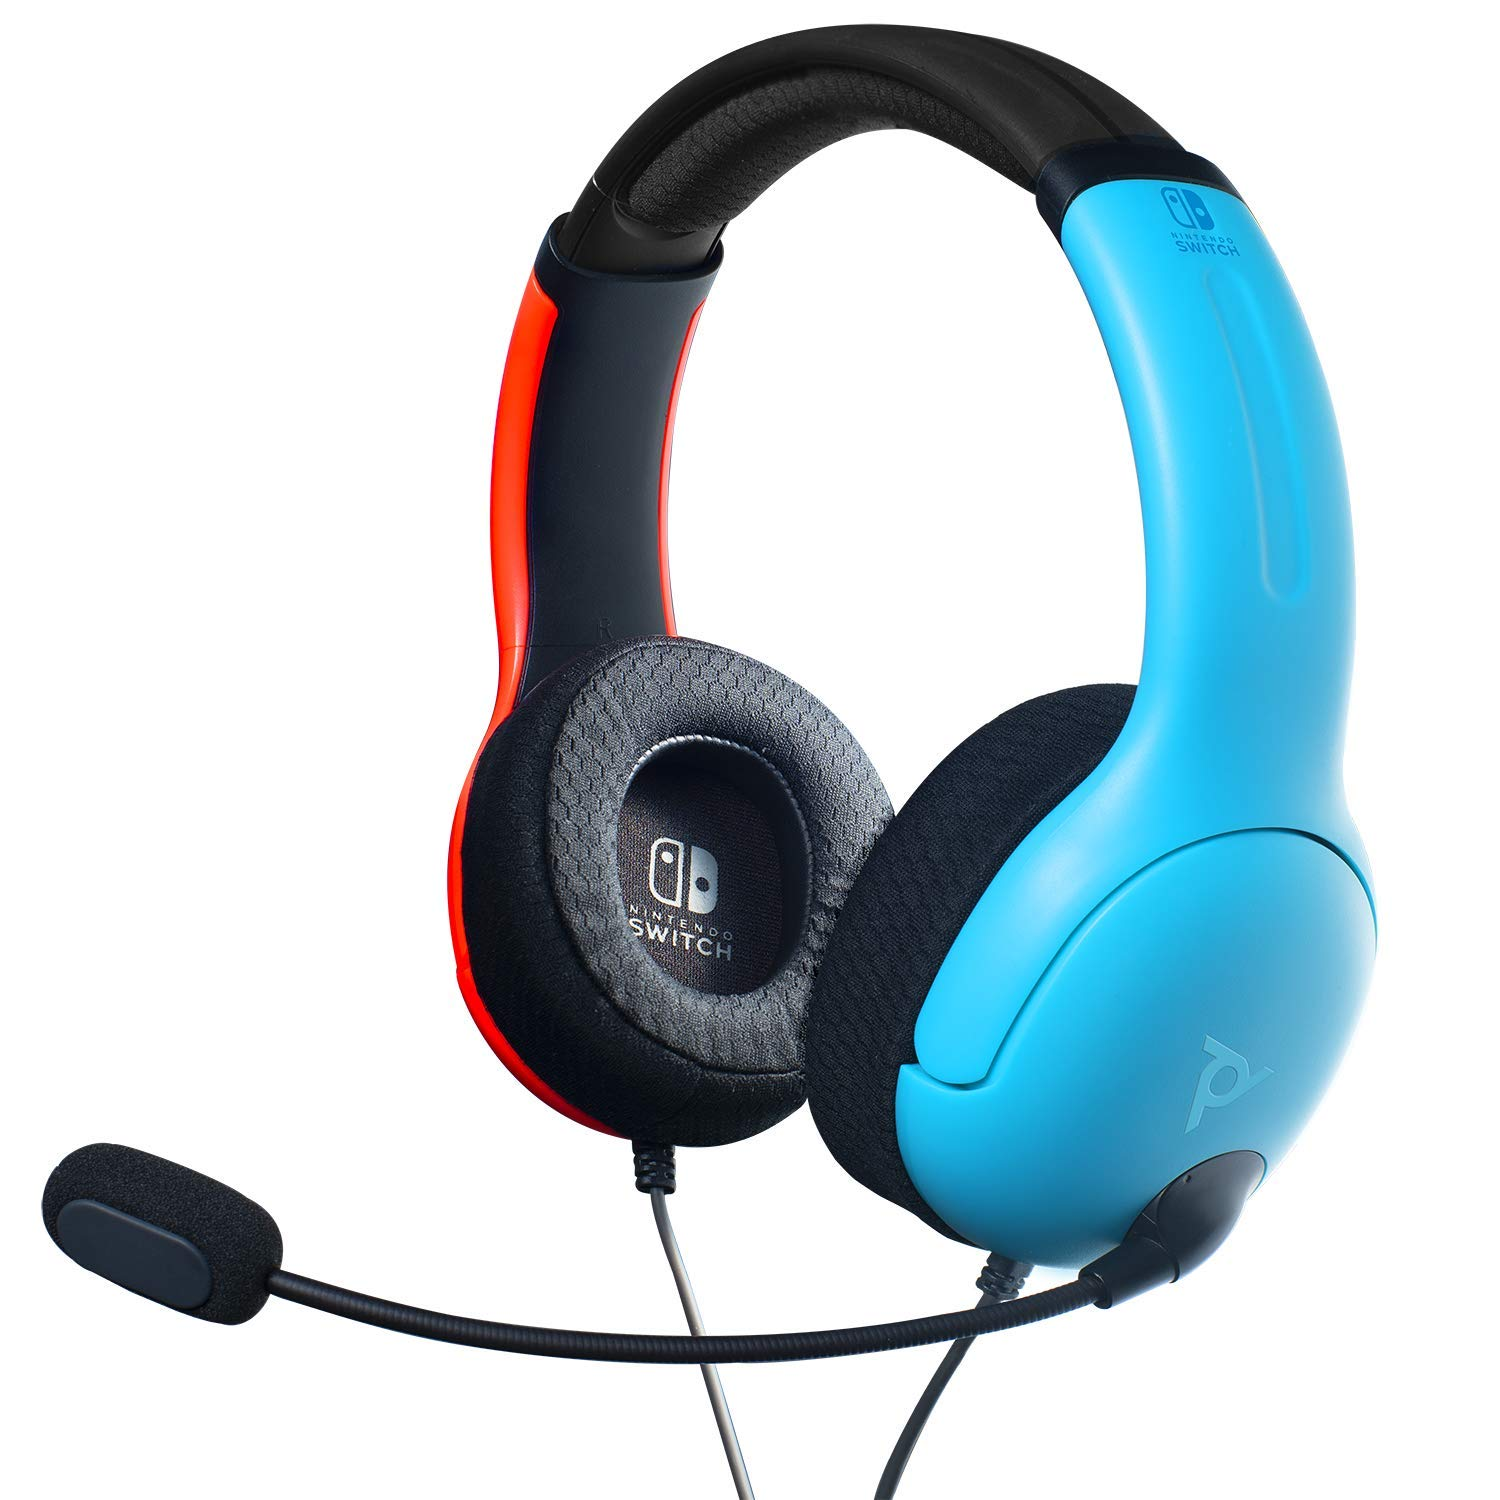 PDP 500-162-NA-BLRD Nintendo Switch LVL40 Wired Stereo Headset Joycon Blue/Red, 500-162-NA-BLRD - Nintendo Switch: Video Games